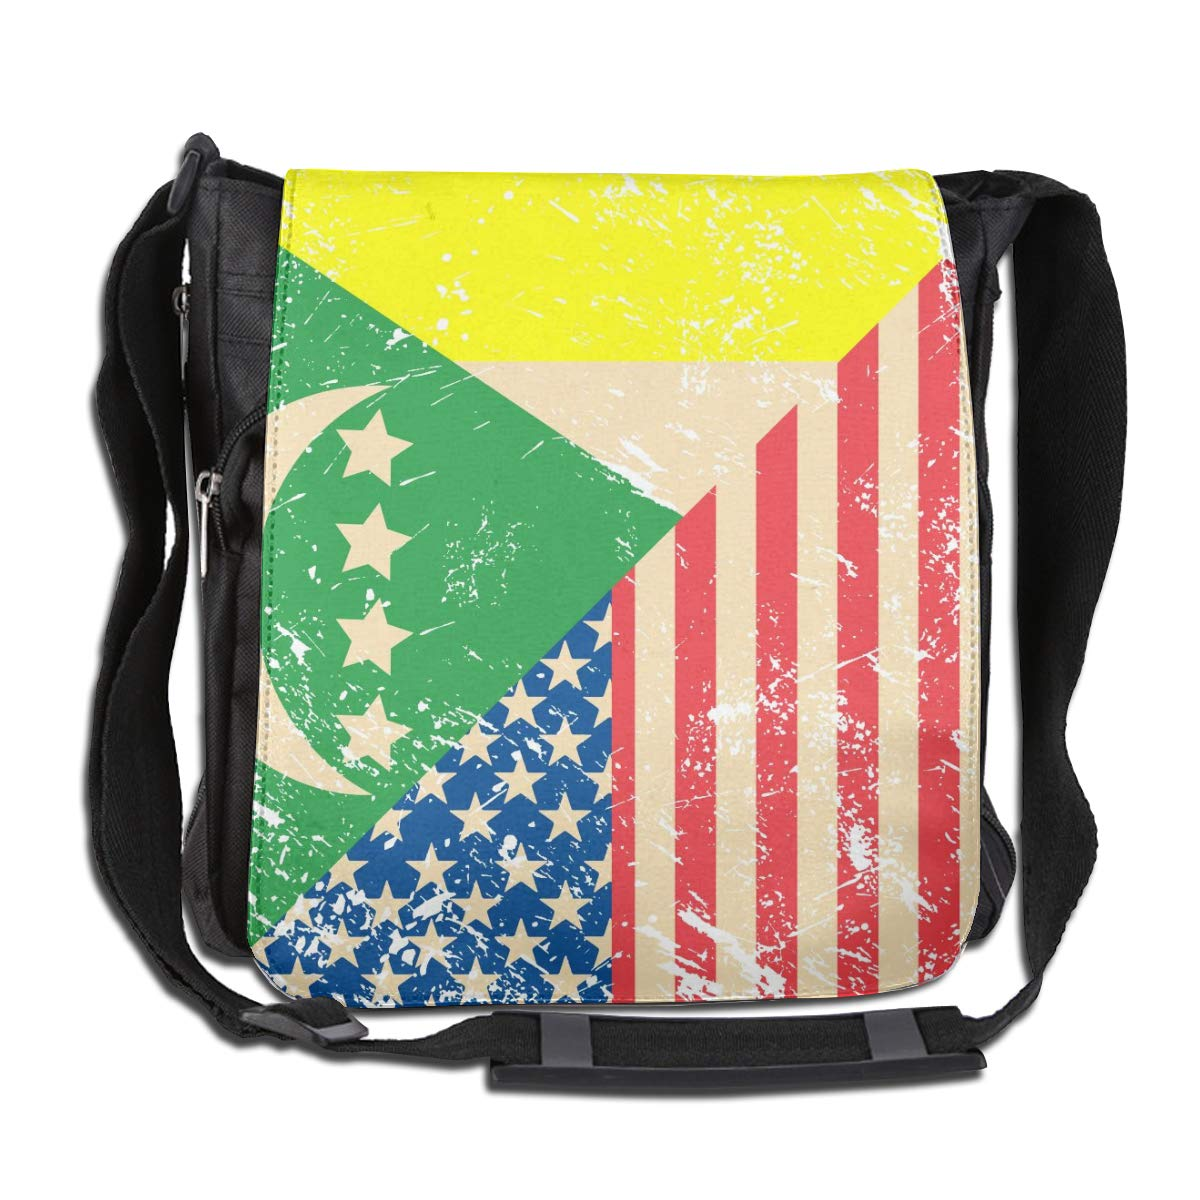 Unisex Stylish Satchel Messenger Bags American And Comoros Retro Flag Crossbody Shoulder Bag Hiking Bags For School//Work//Trips